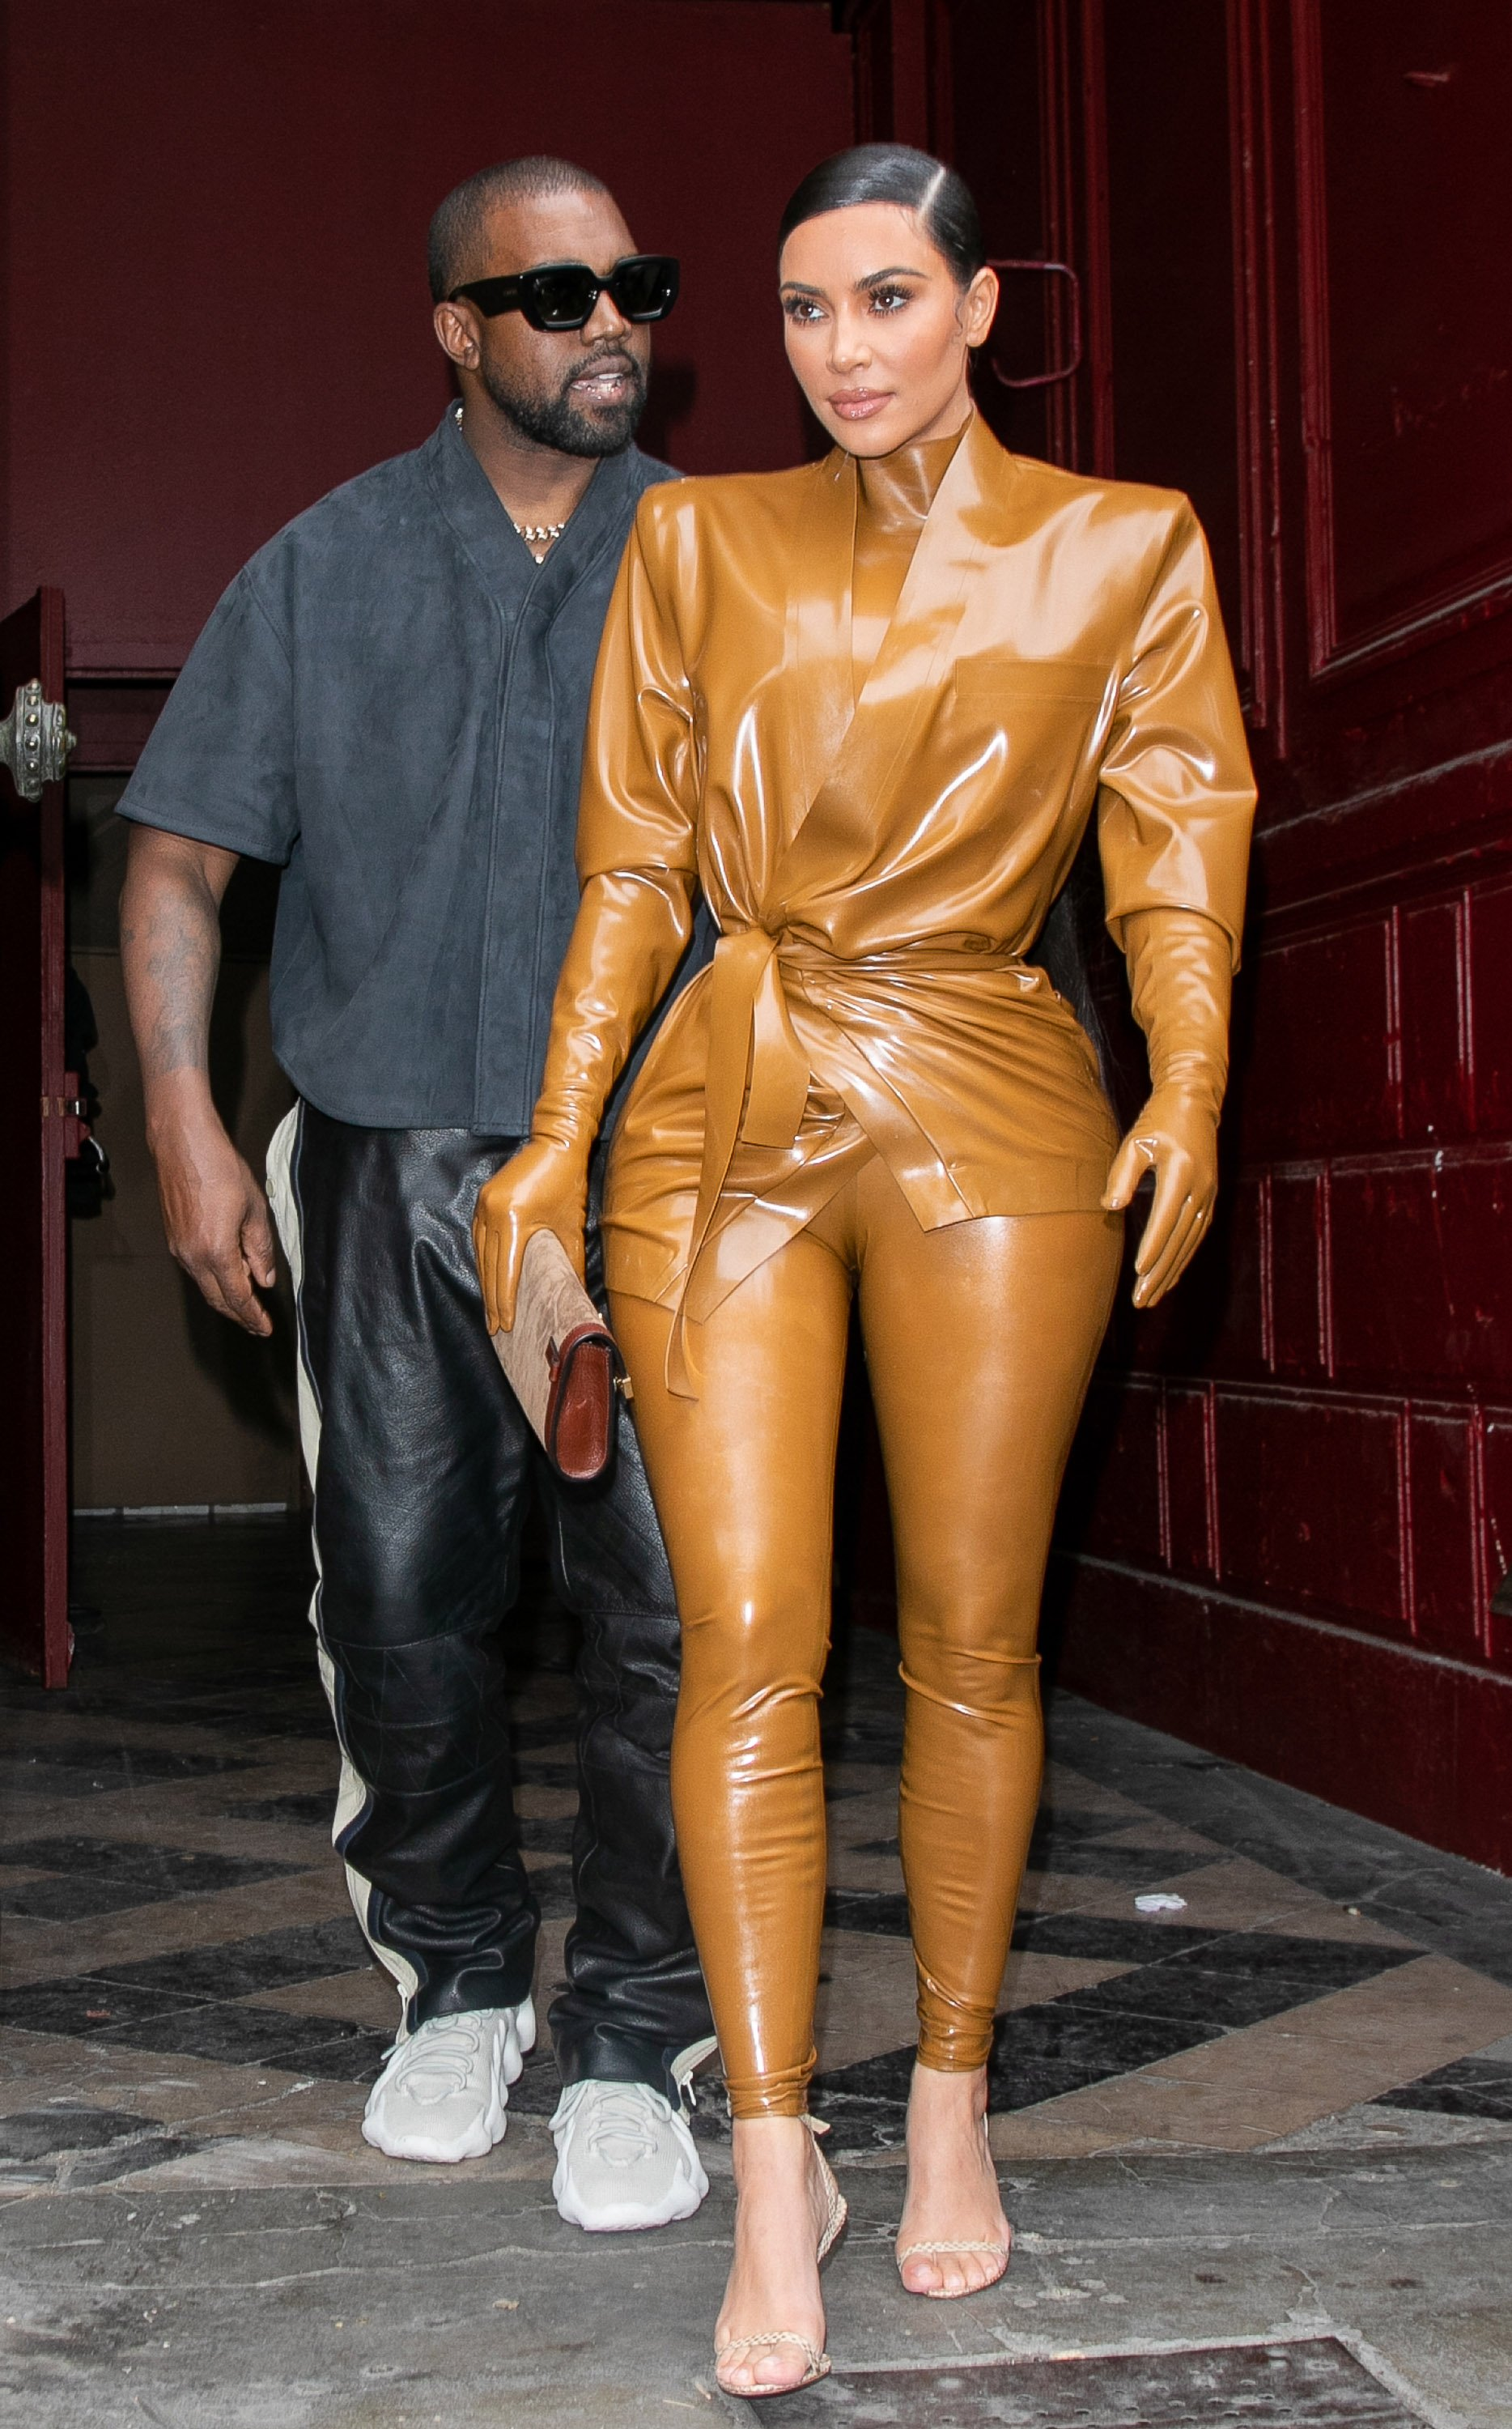 Kim Kardashian and Kanye West at Theatre Des Bouffes Du Nord during Paris Fashion Week on March 01, 2020 in Paris, France. | Source: Getty Images